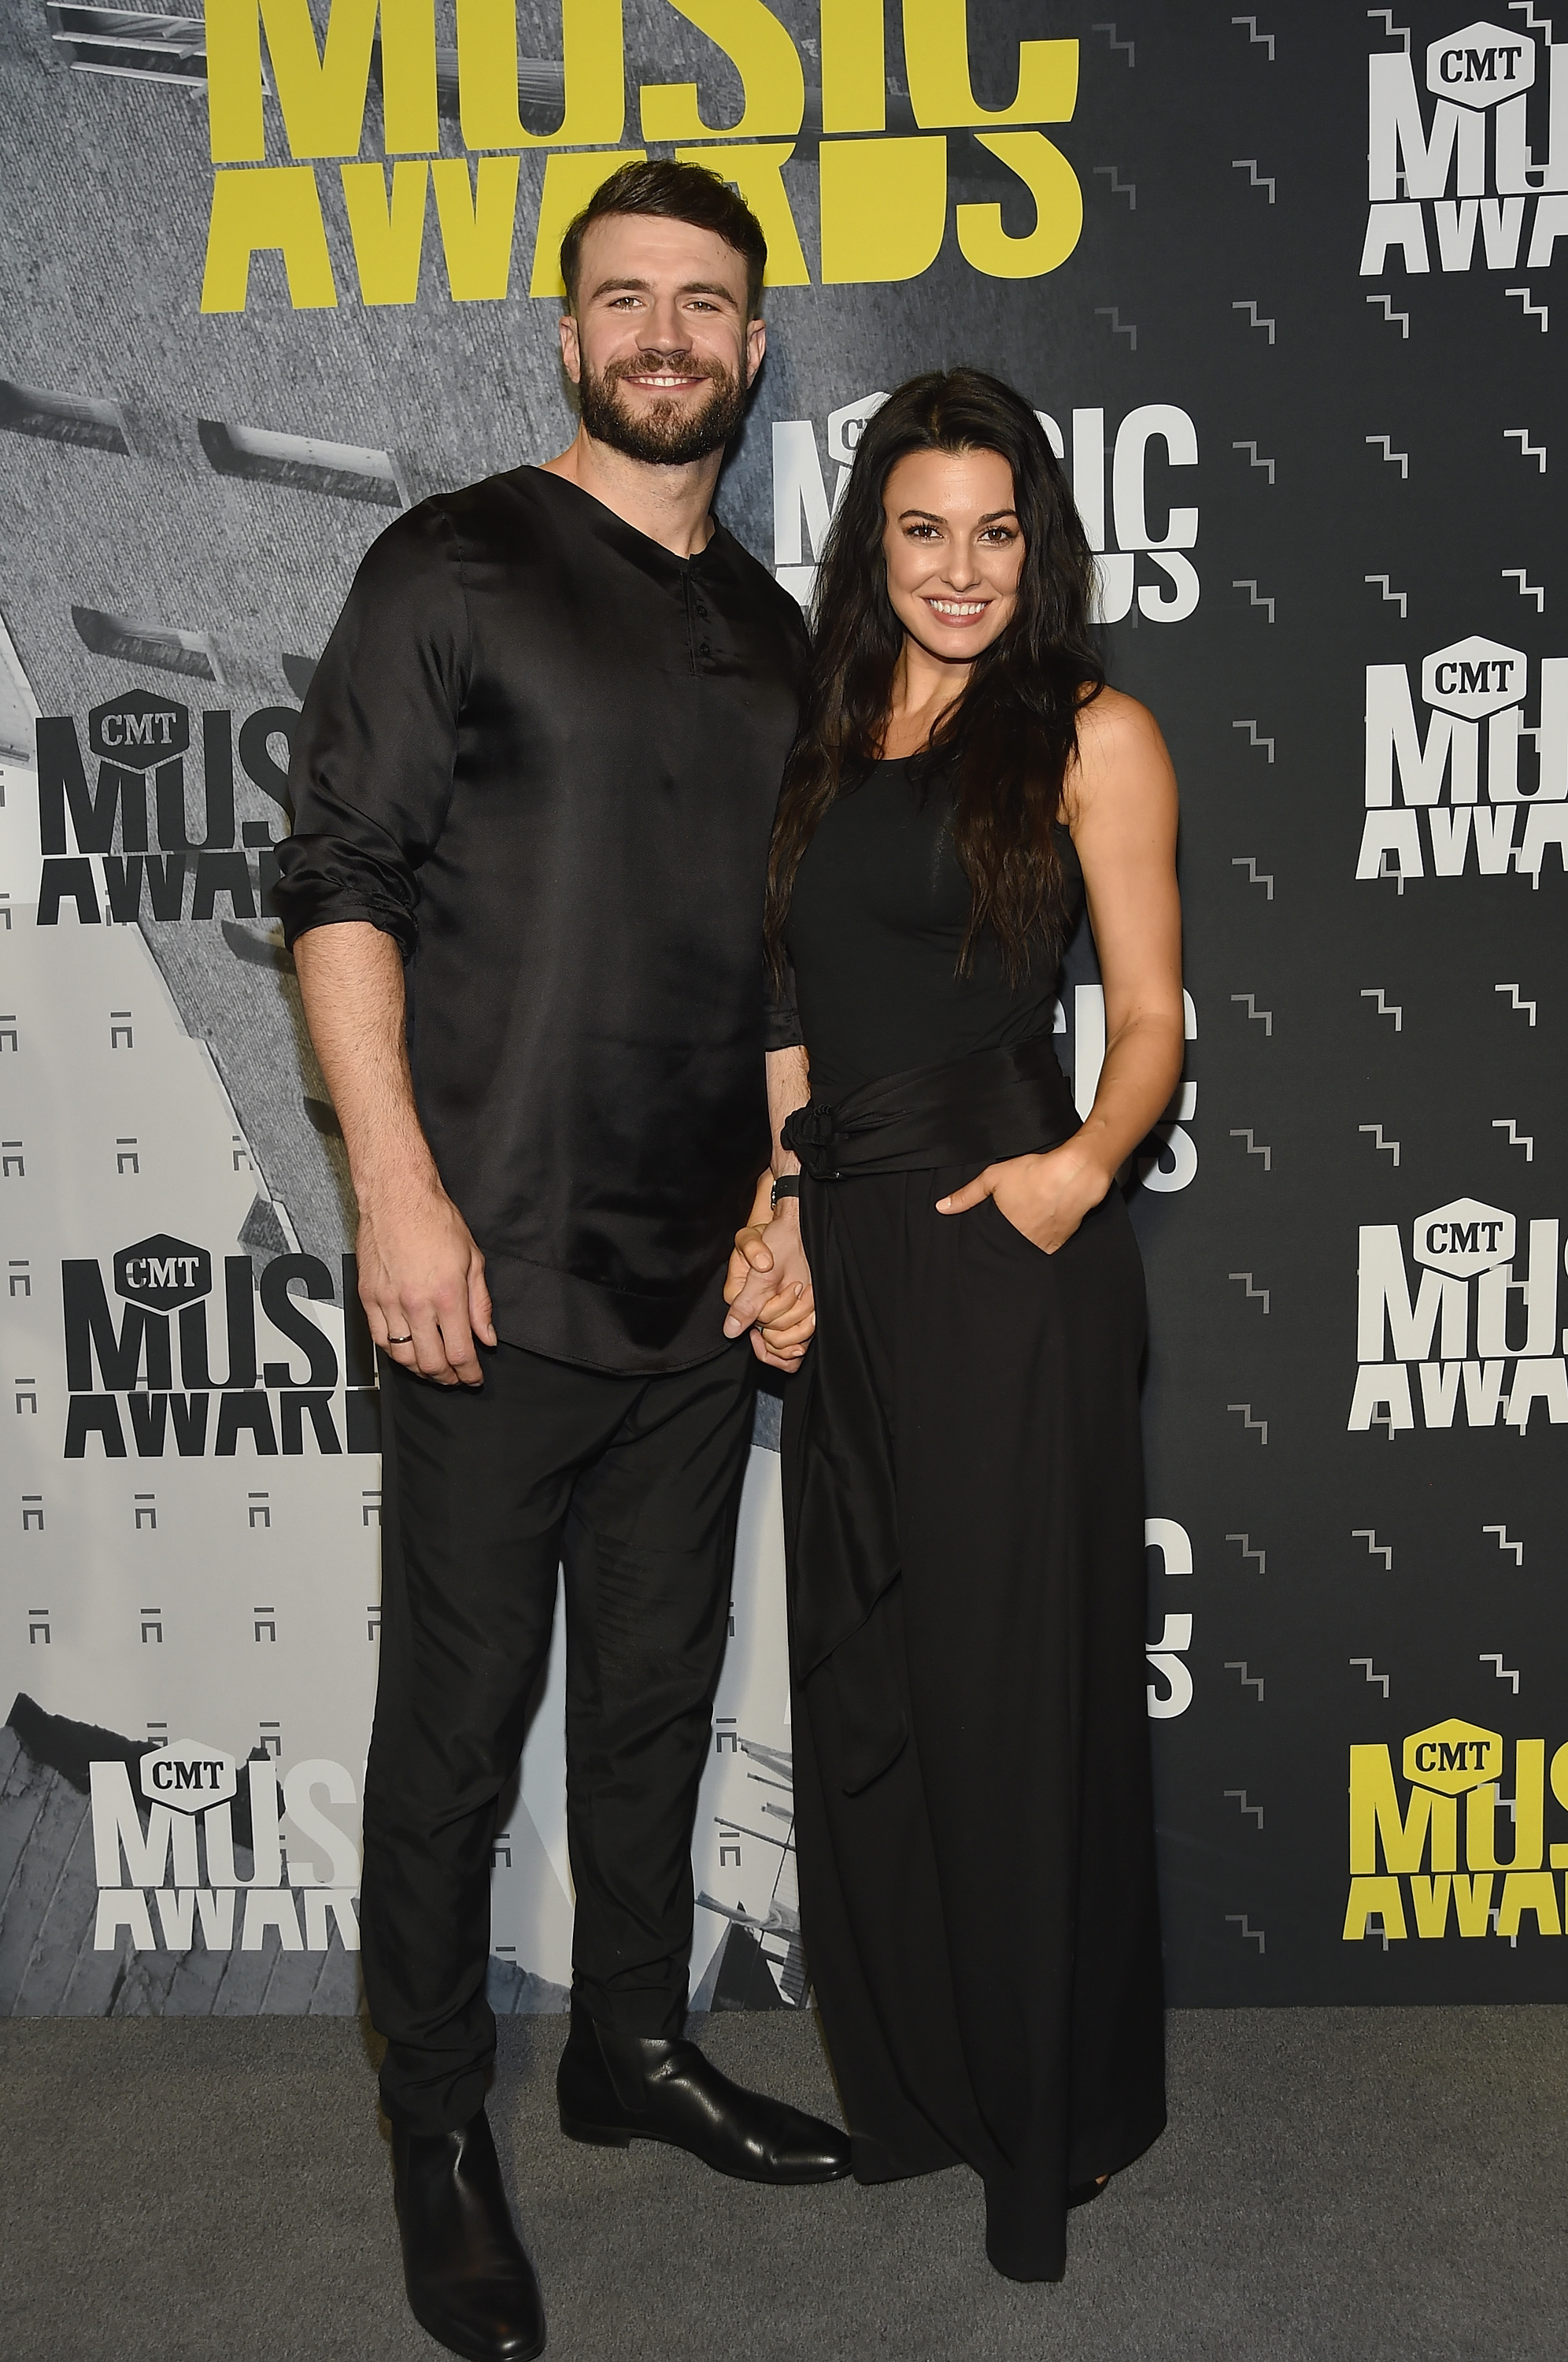 NASHVILLE, TN - JUNE 07: Singer-songwriter Sam Hunt and Hannah Lee Fowler attend the 2017 CMT Music awards at the Music City Center on June 7, 2017 in Nashville, Tennessee. (Photo by Rick Diamond/Getty Images for CMT)